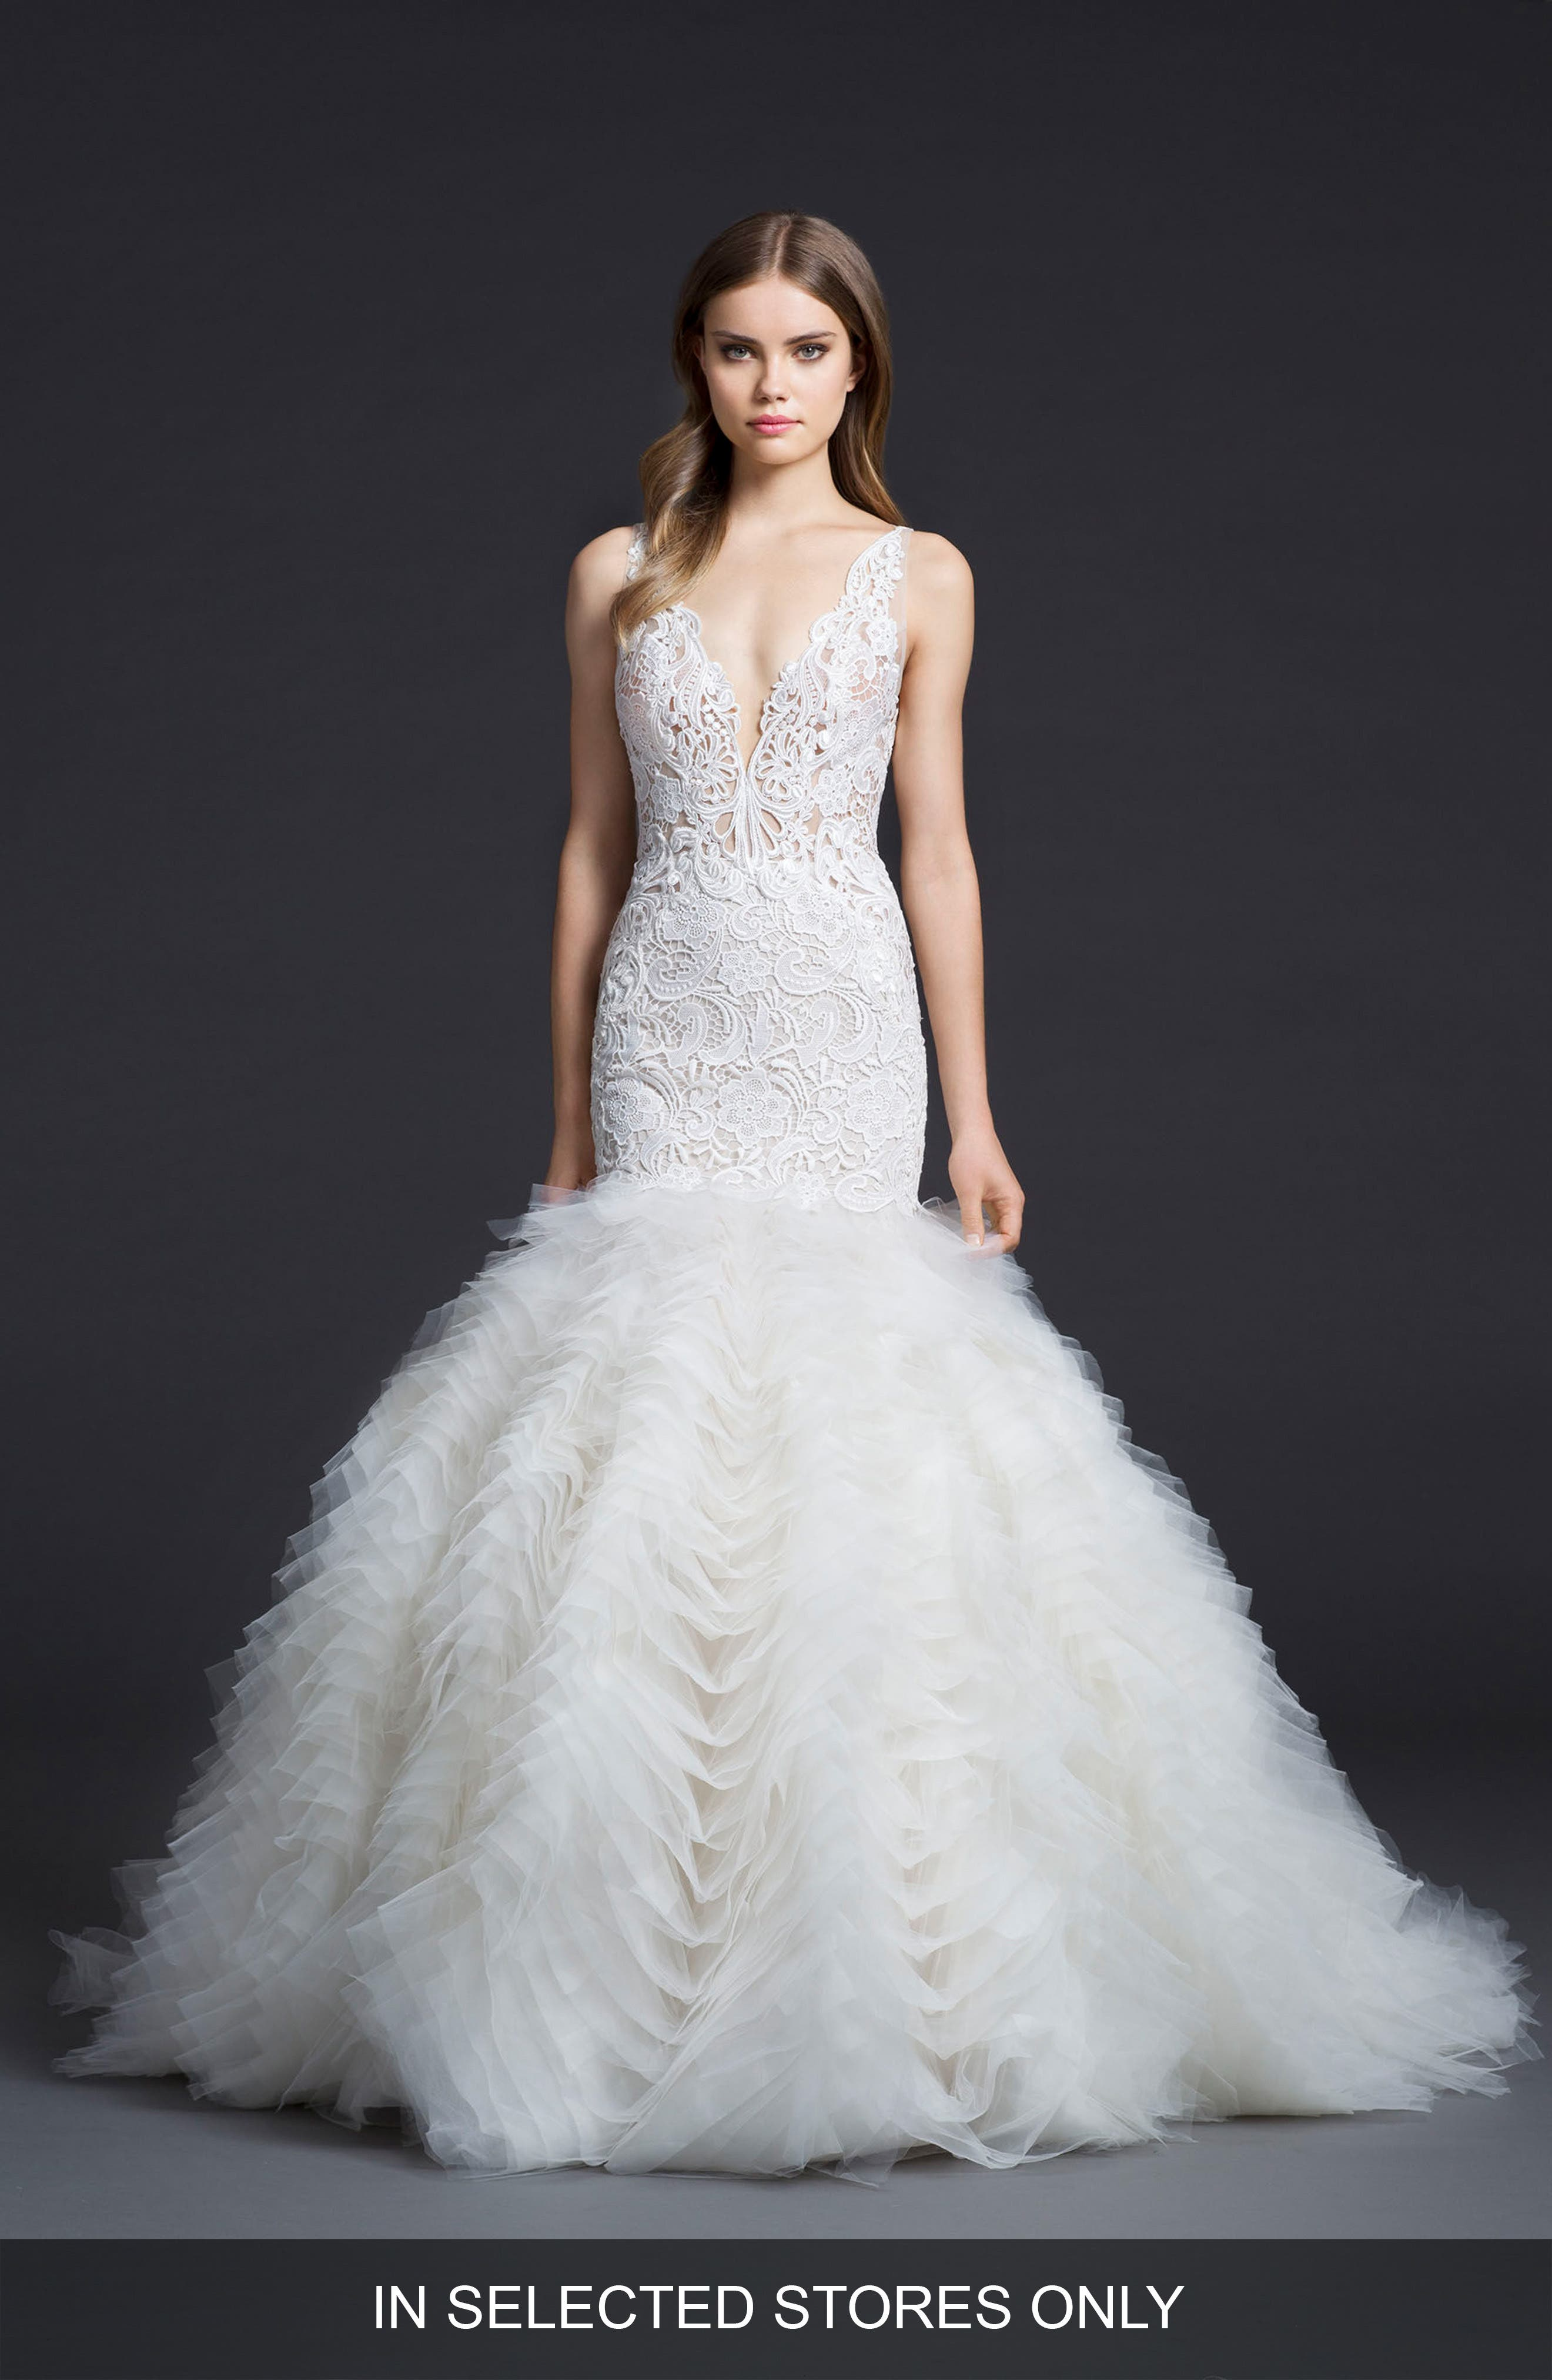 Crochet & Chiffon Mermaid Gown,                         Main,                         color, Ivory/ Cashmere